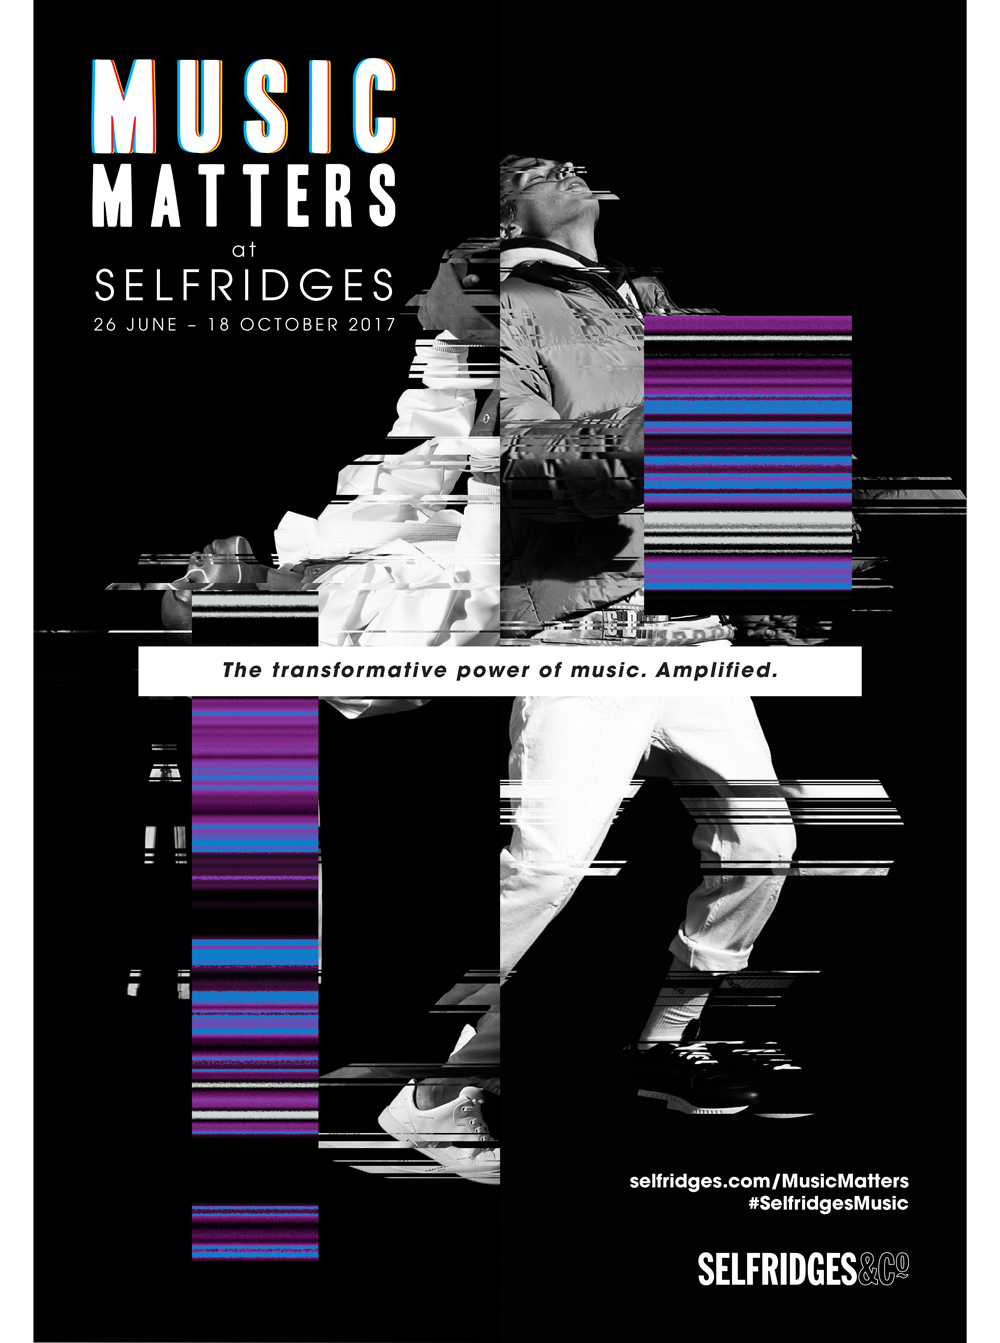 CS17009_Music_Matters_Hero_Poster_A2_AW_HR-2.jpg